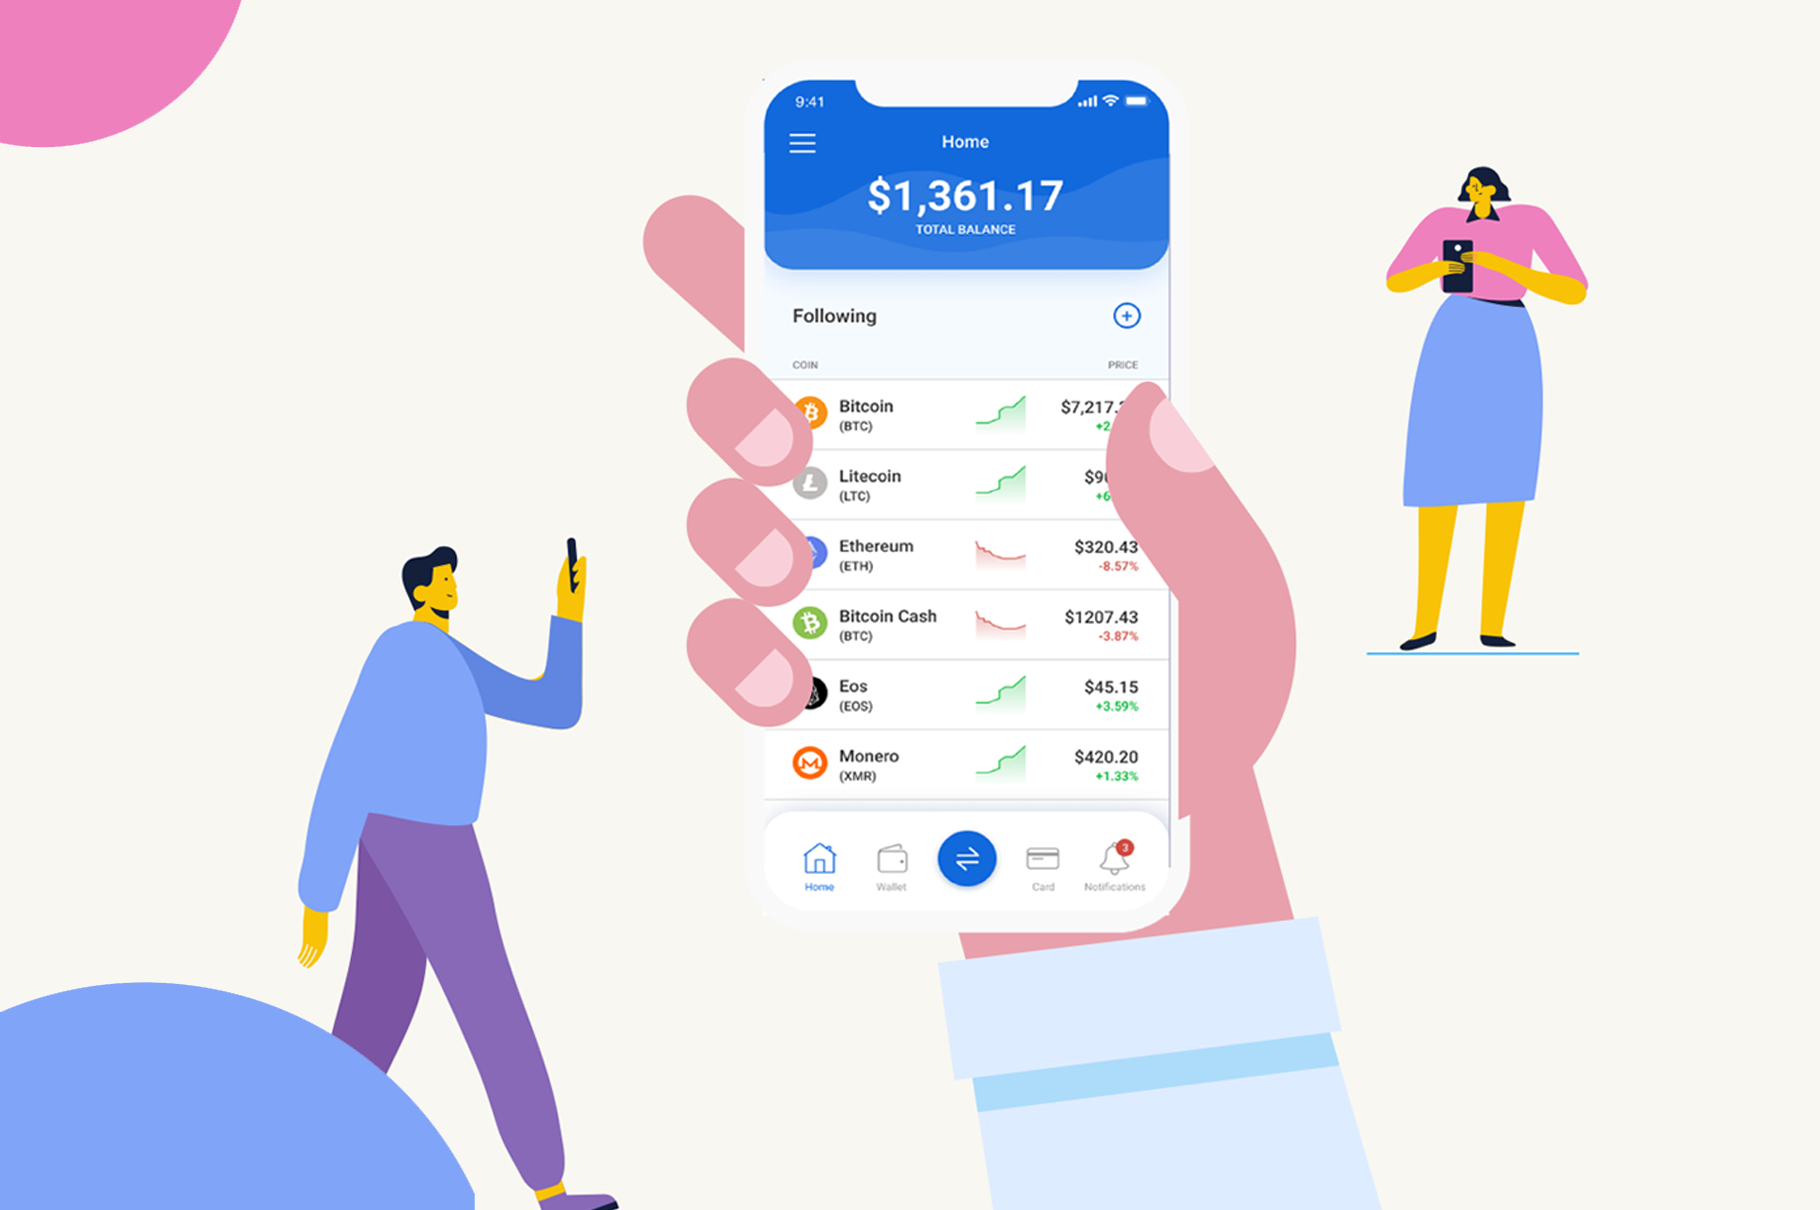 Introducing Kryptonio – The safest bitcoin and crypto wallet